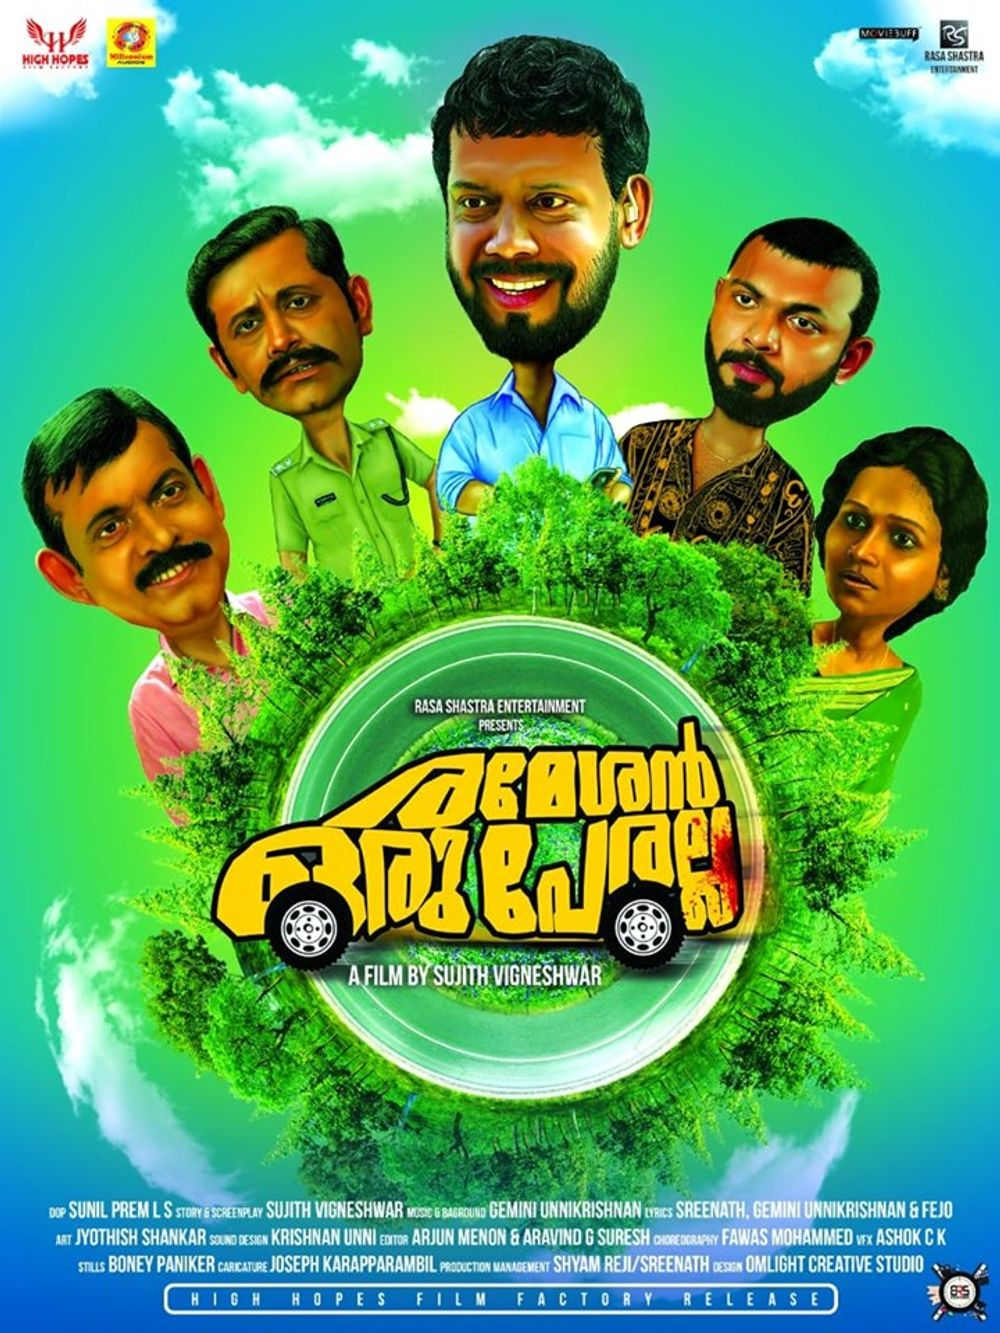 Rameshan Oru Peralla Movie Review Malayalam Movie Review